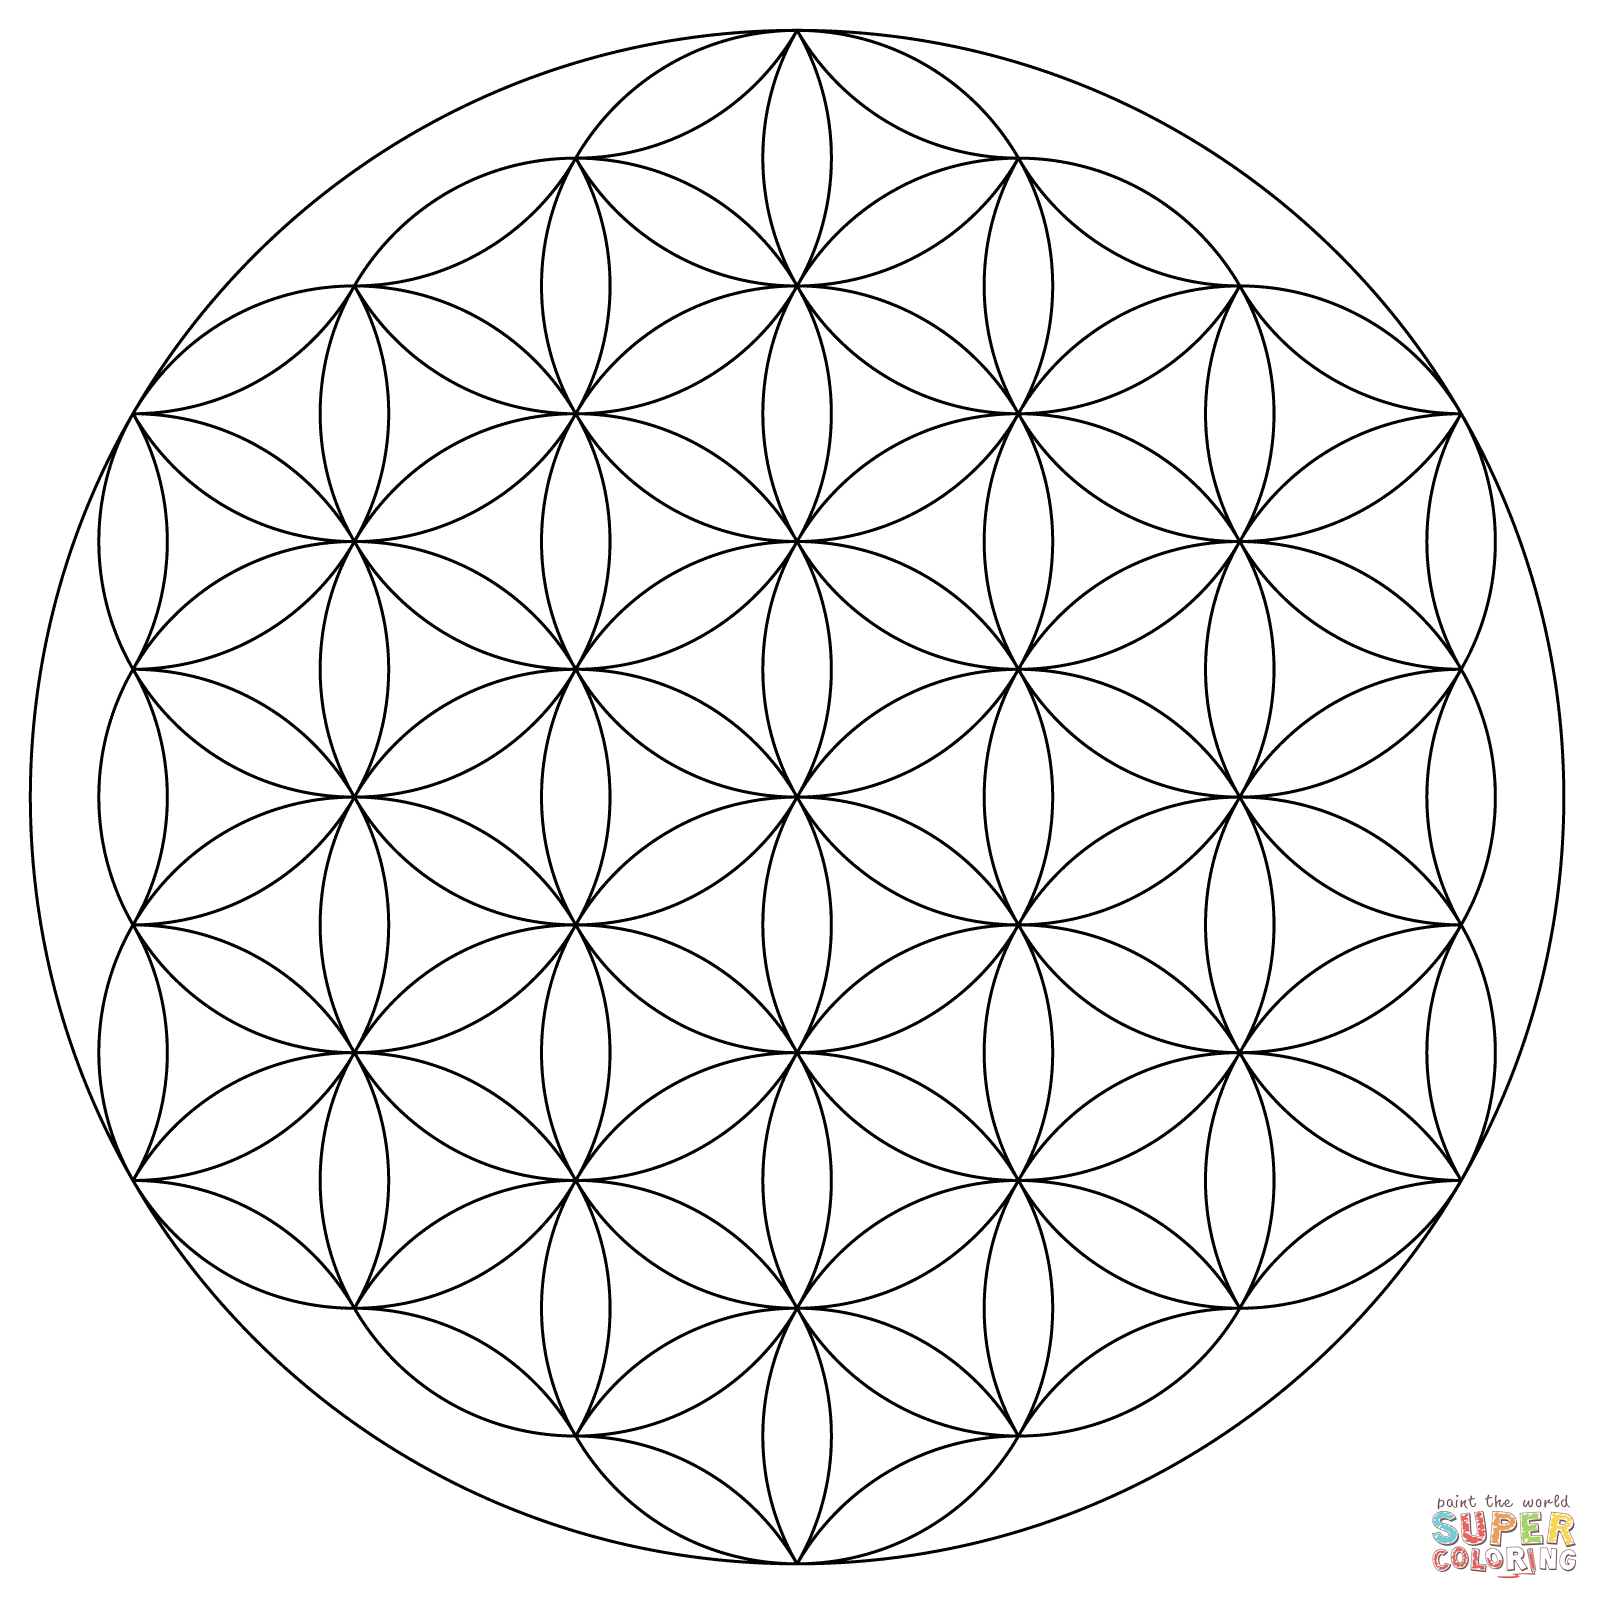 the u0027 seed of life u0027 is formed from seven circles being placed with